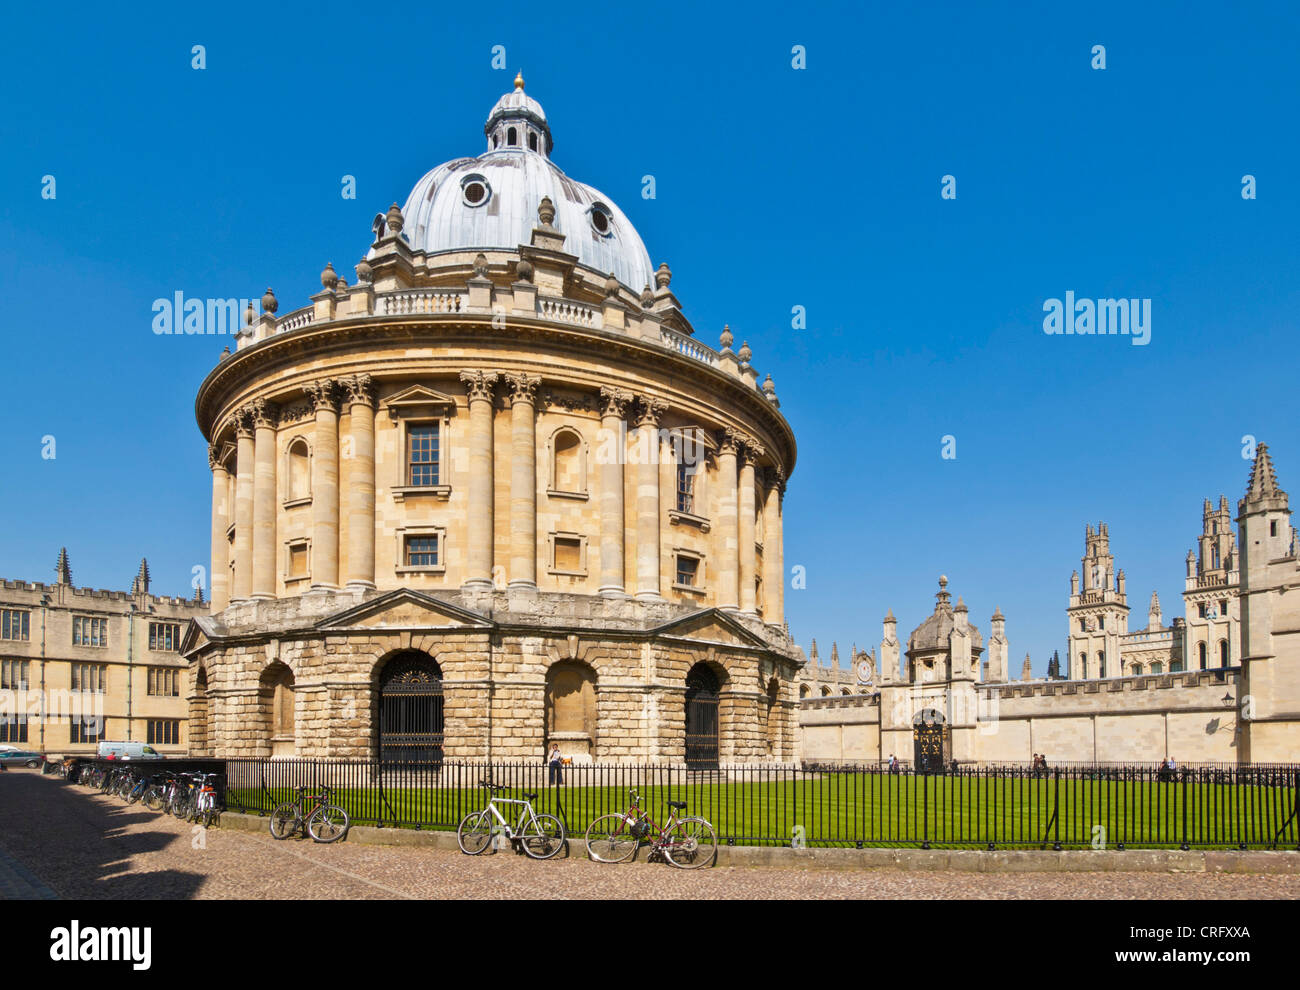 Radcliffe Camera  University city of Oxford, Oxfordshire, England uk gb europe - Stock Image